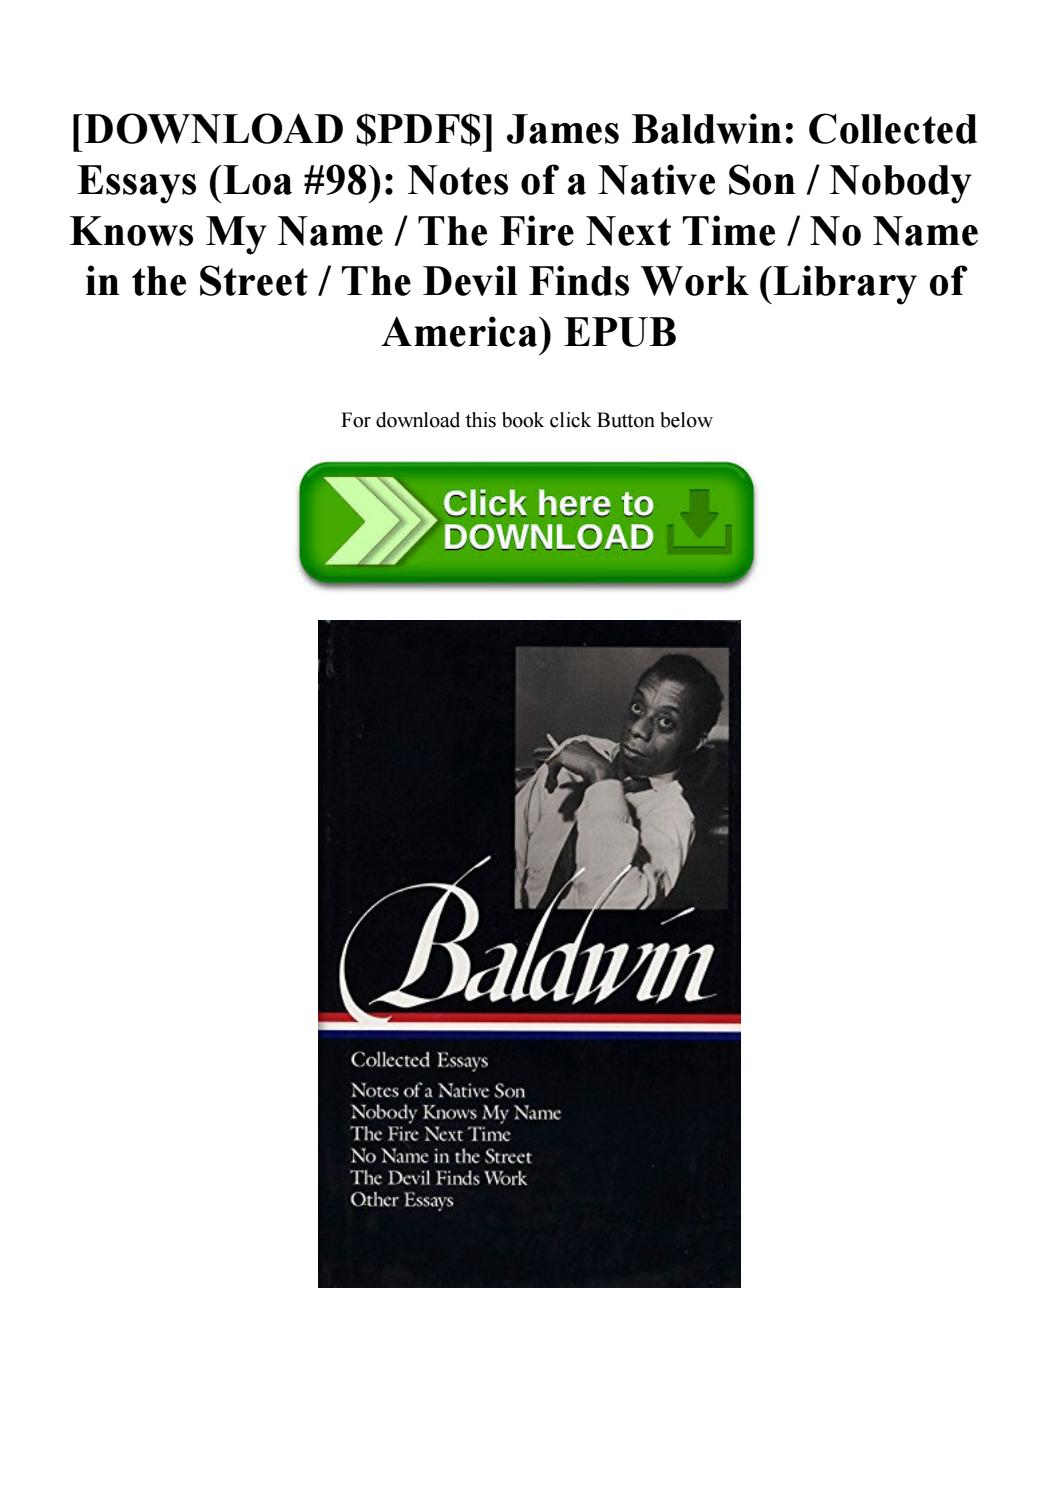 009 Essay Example James Baldwin Essays Pdf Page 1 Imposing Full